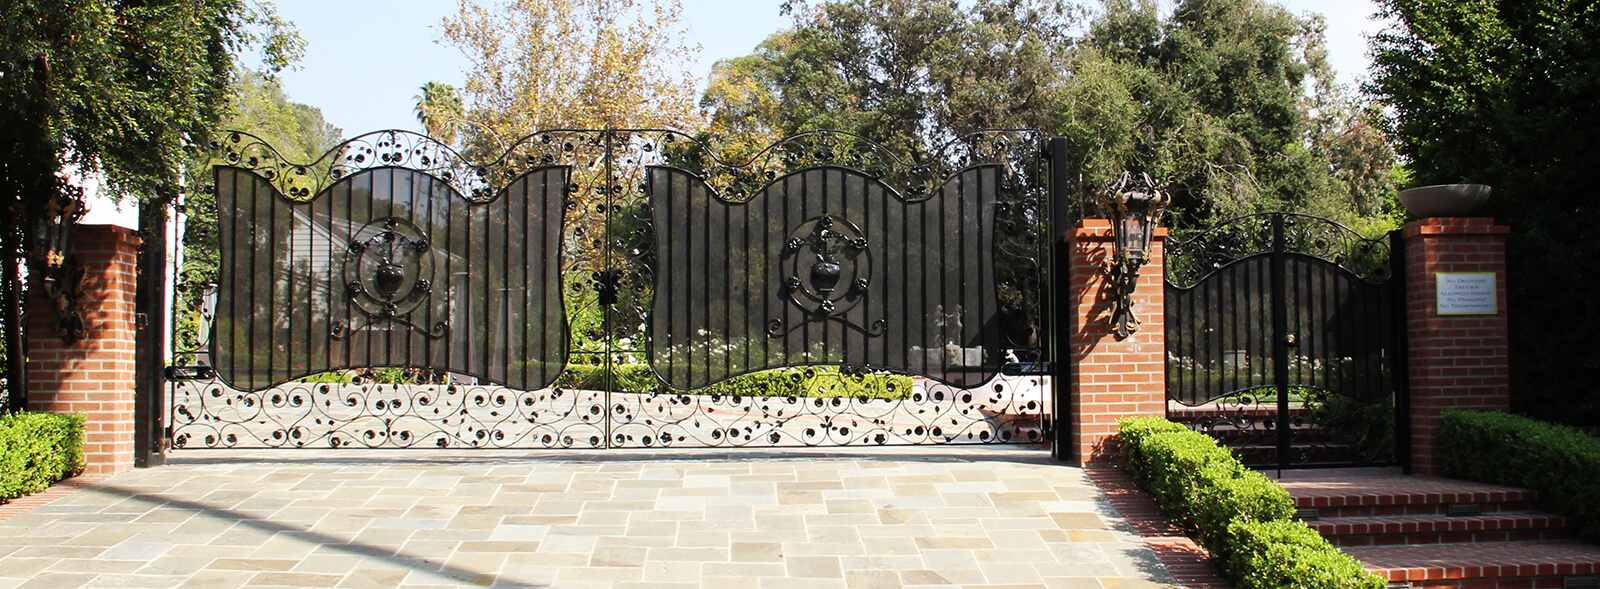 Bifold wrought iron gate with steel mesh and decorated with handmade flower and leaf appliques